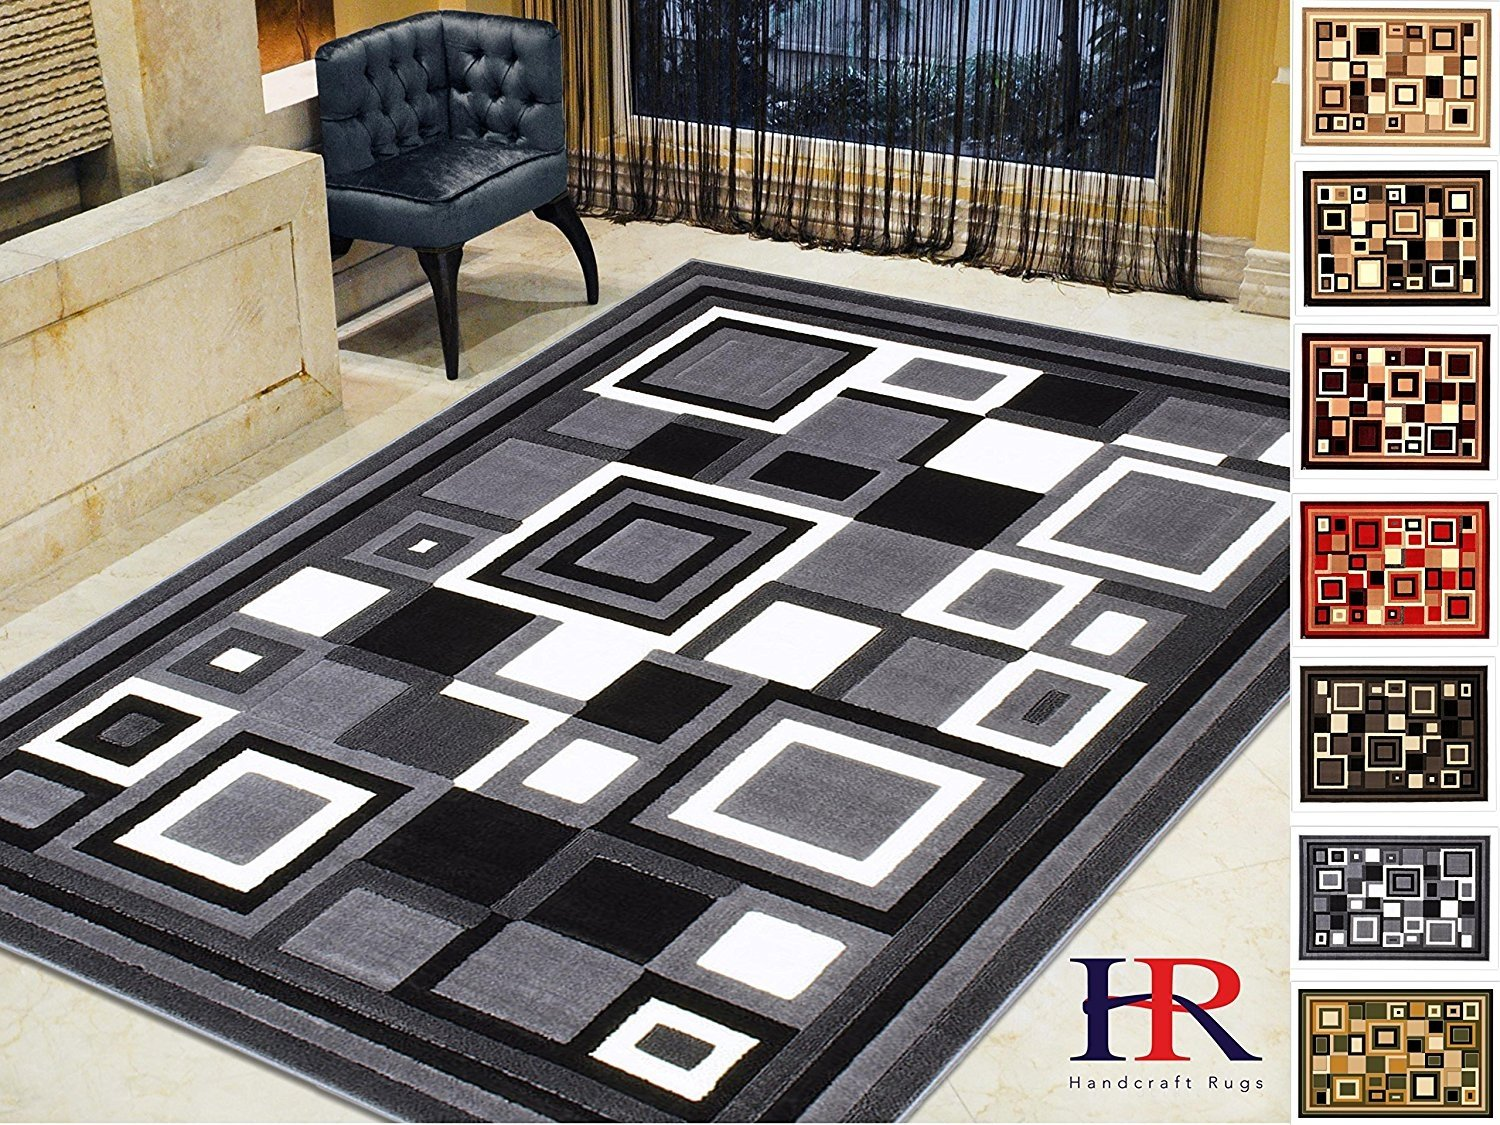 Picture of: Handcraft Rugs Modern Contemporary Living Room Rugs Abstract Carpet With Geometric Pattern Gray Black White Ivory 5×7 Feet Walmart Com Walmart Com